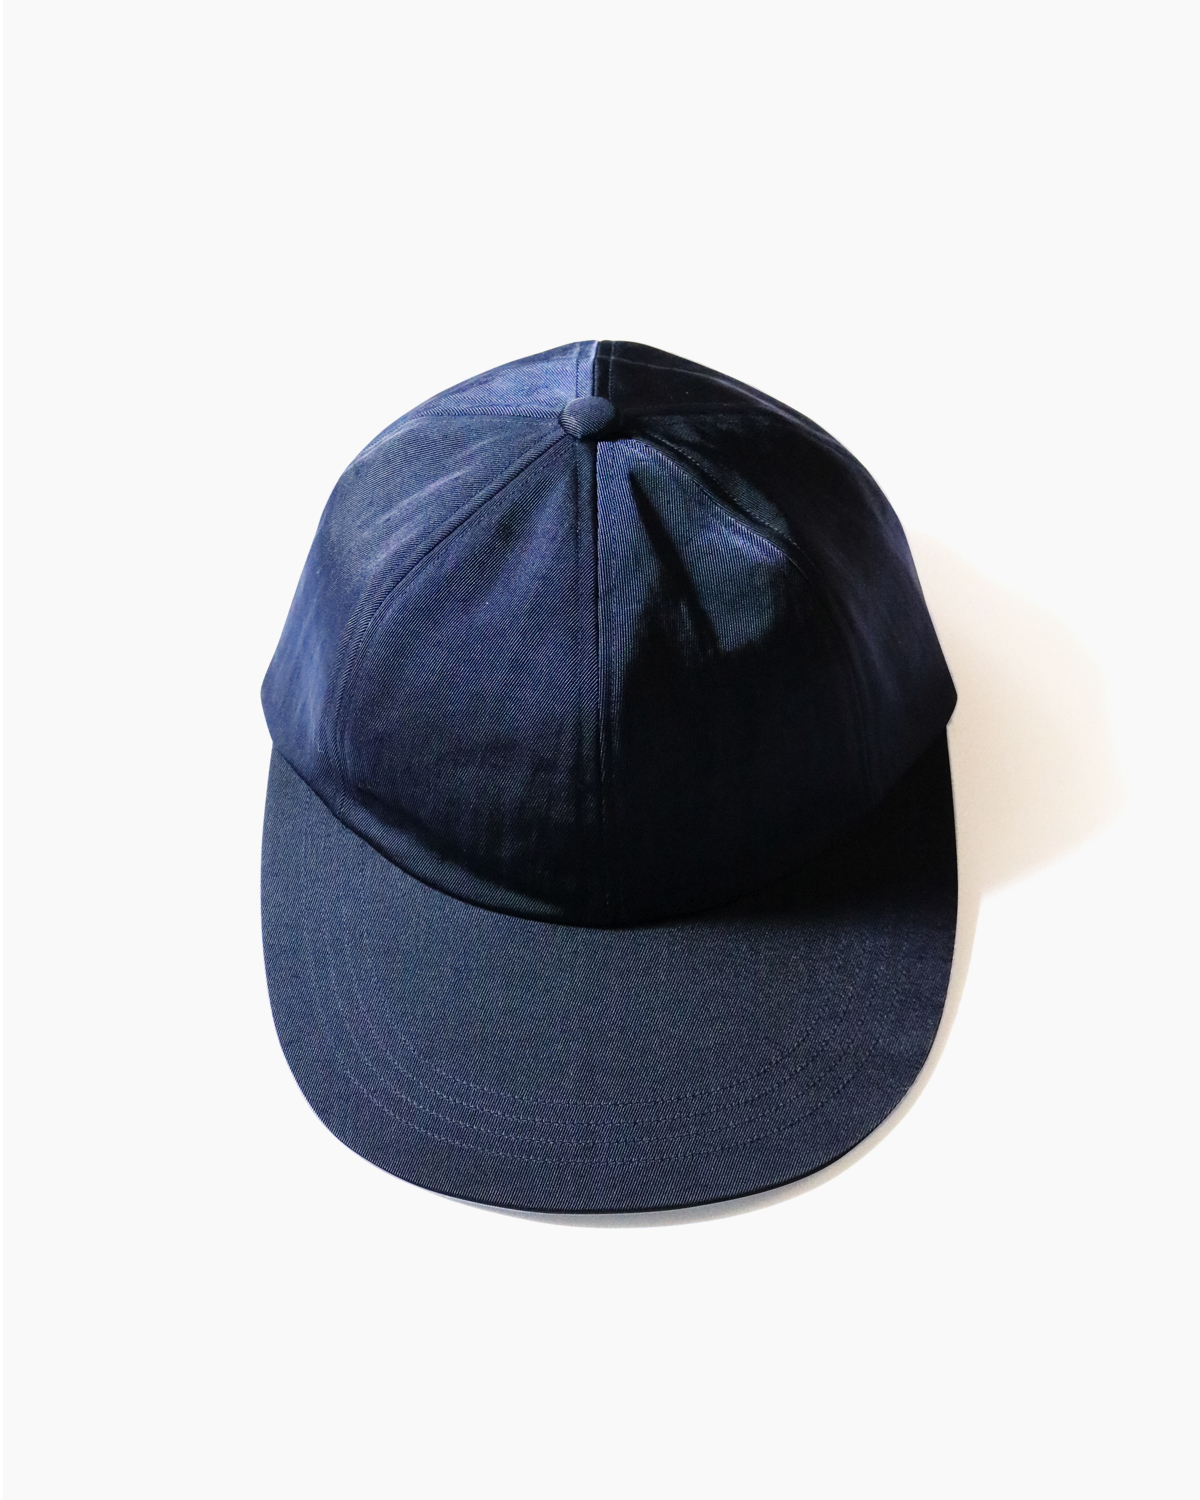 COMEANDGOES_for-tpr_LONG-BRIM-CAP_Navy_10800_3